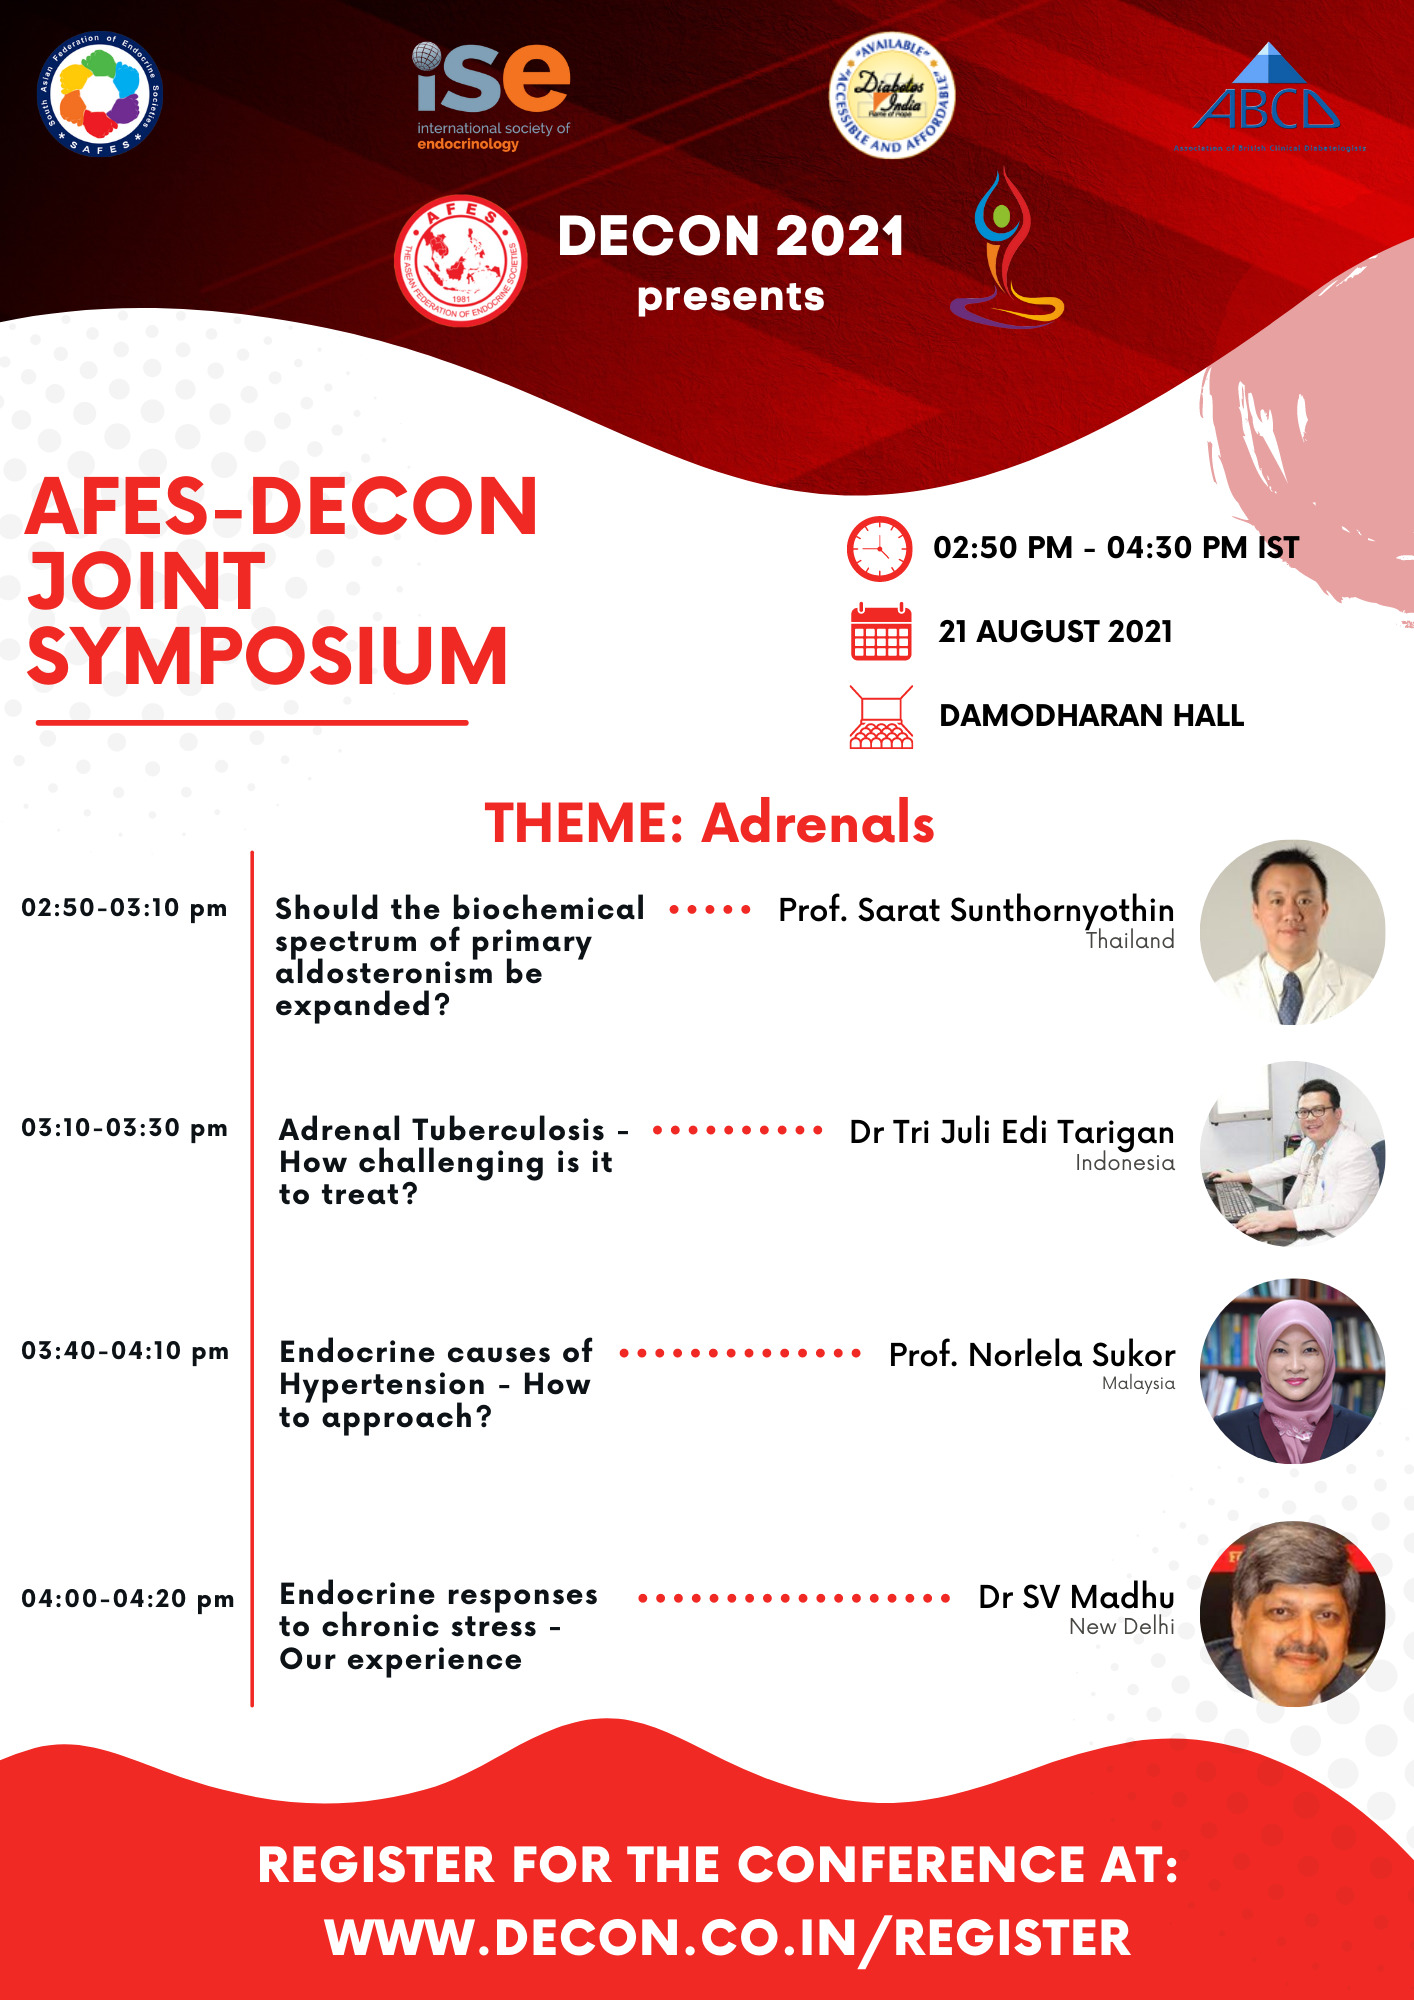 Join the ASEAN Federation of Endocrine Societies (AFES) and International Diabetes and Endocrine Conference (DECON) in their joint symposium on adrenal disorders this August 21, 2021.